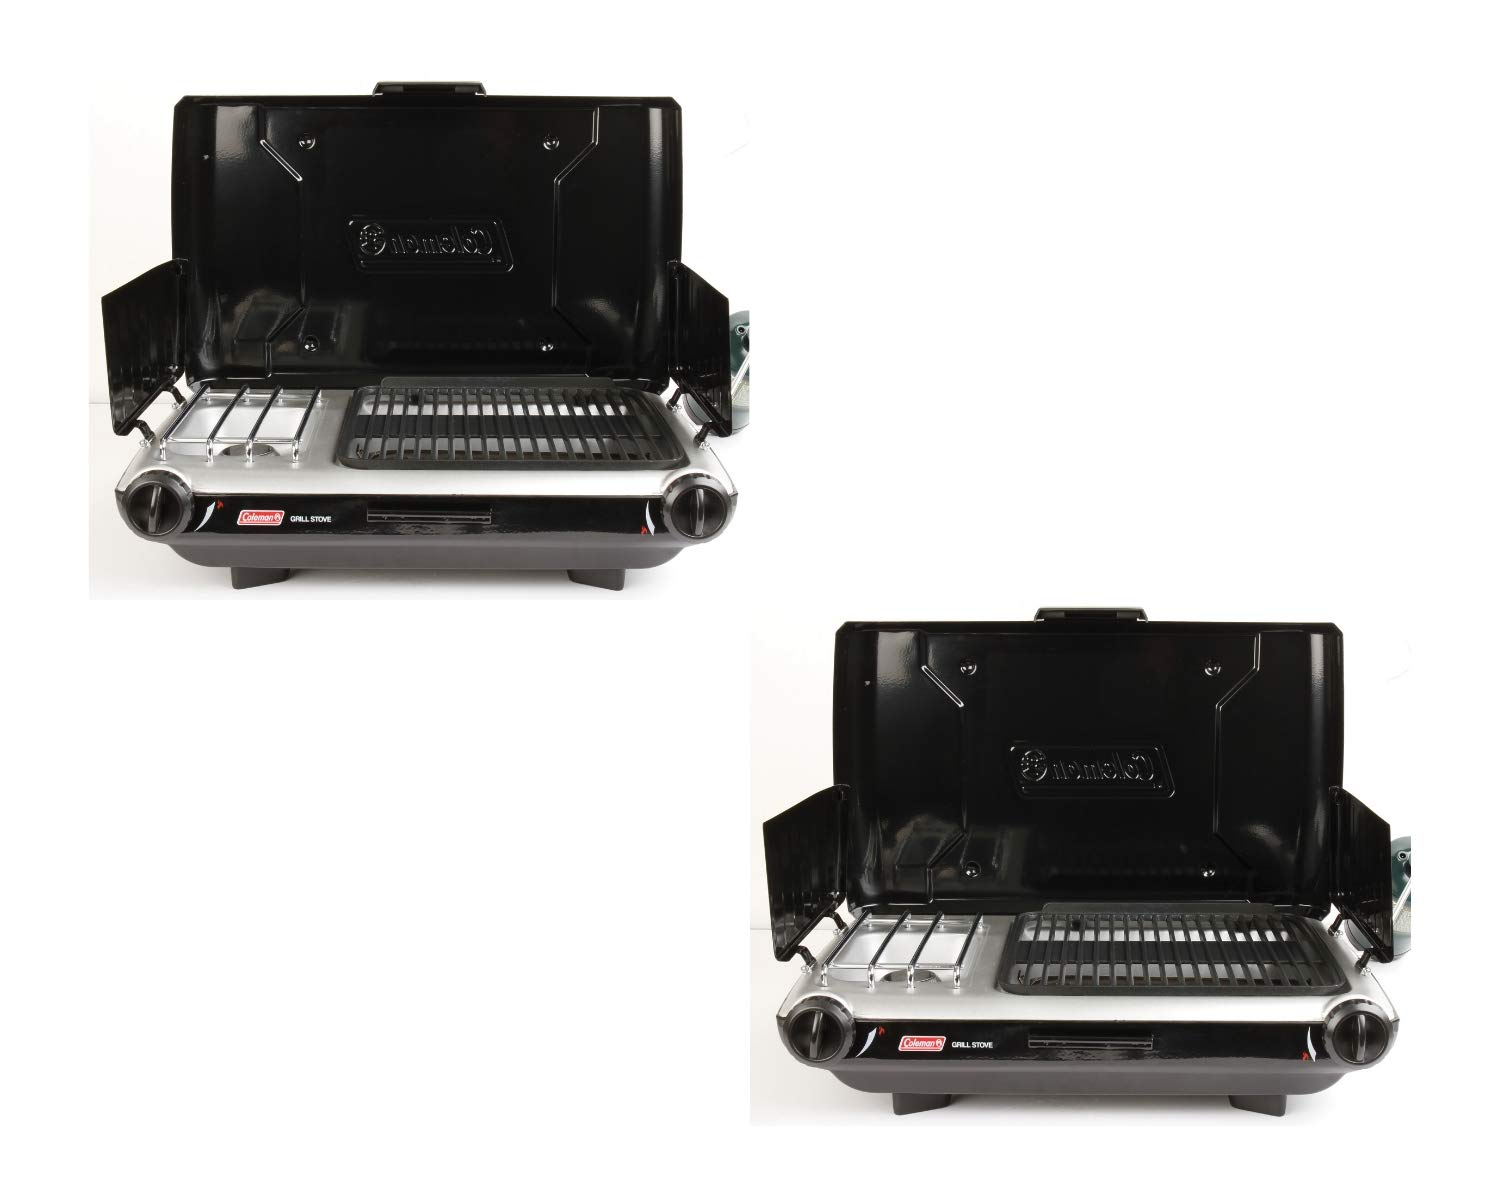 Coleman Camp Propane Grill/Stove (2 Count, Grill/Stove)